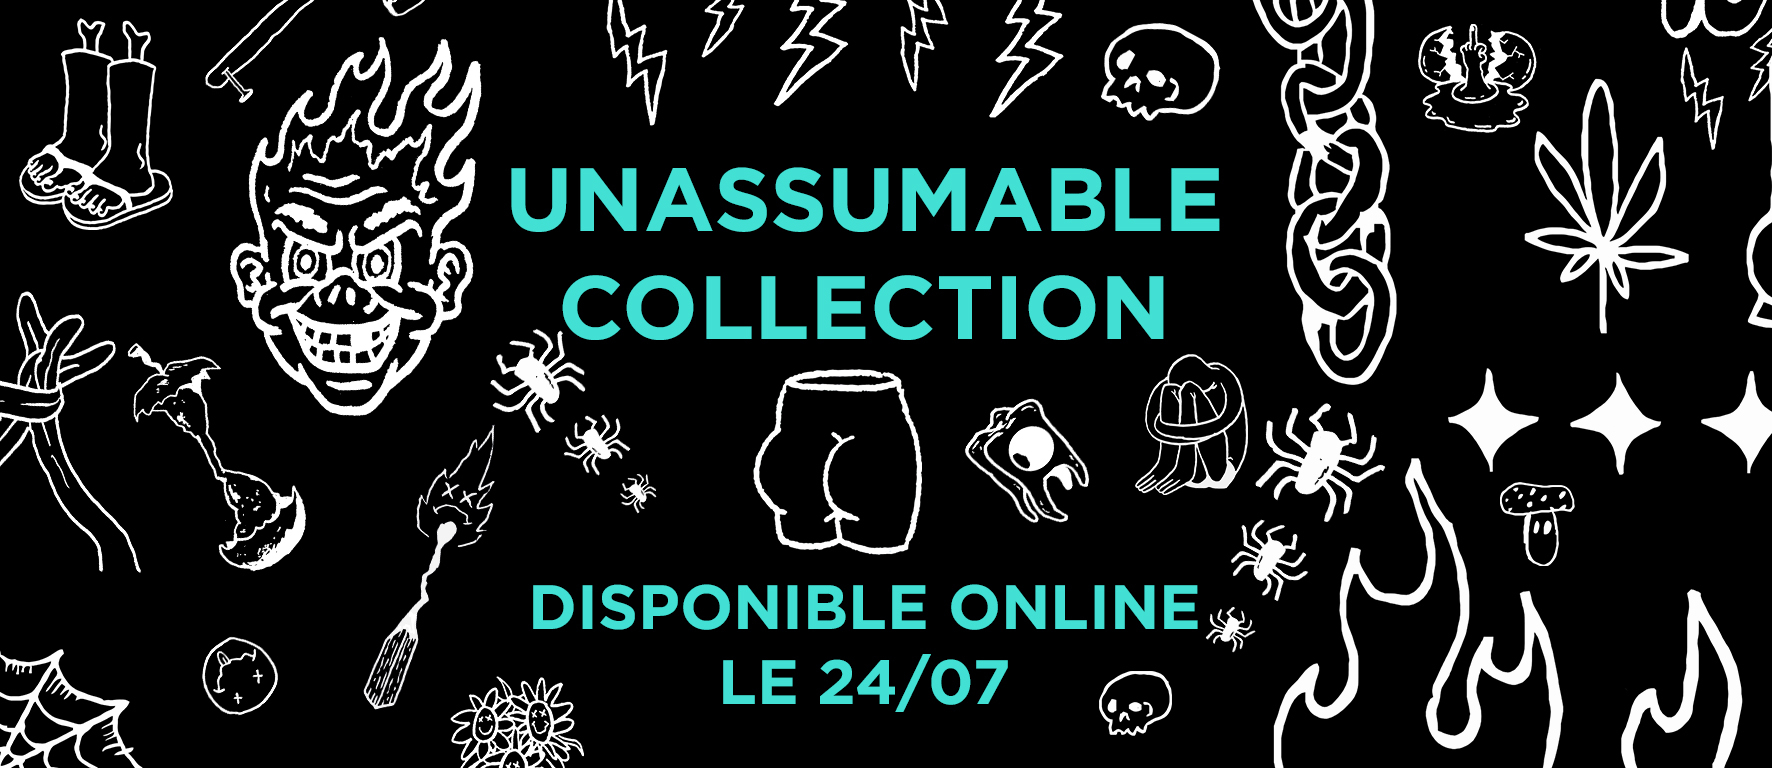 UNASSUMABLE COLLECTION 2